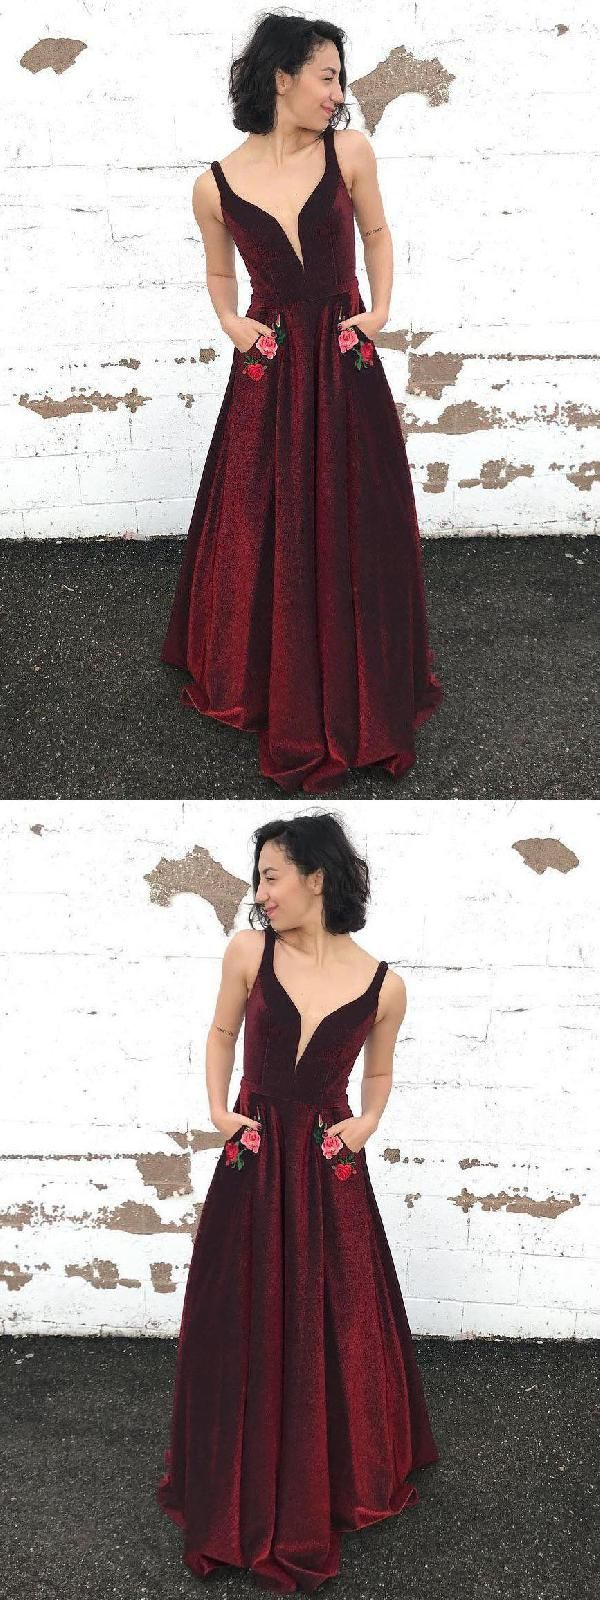 Magnificent Prom Dress Burgundy Prom Dress Long Prom Dress